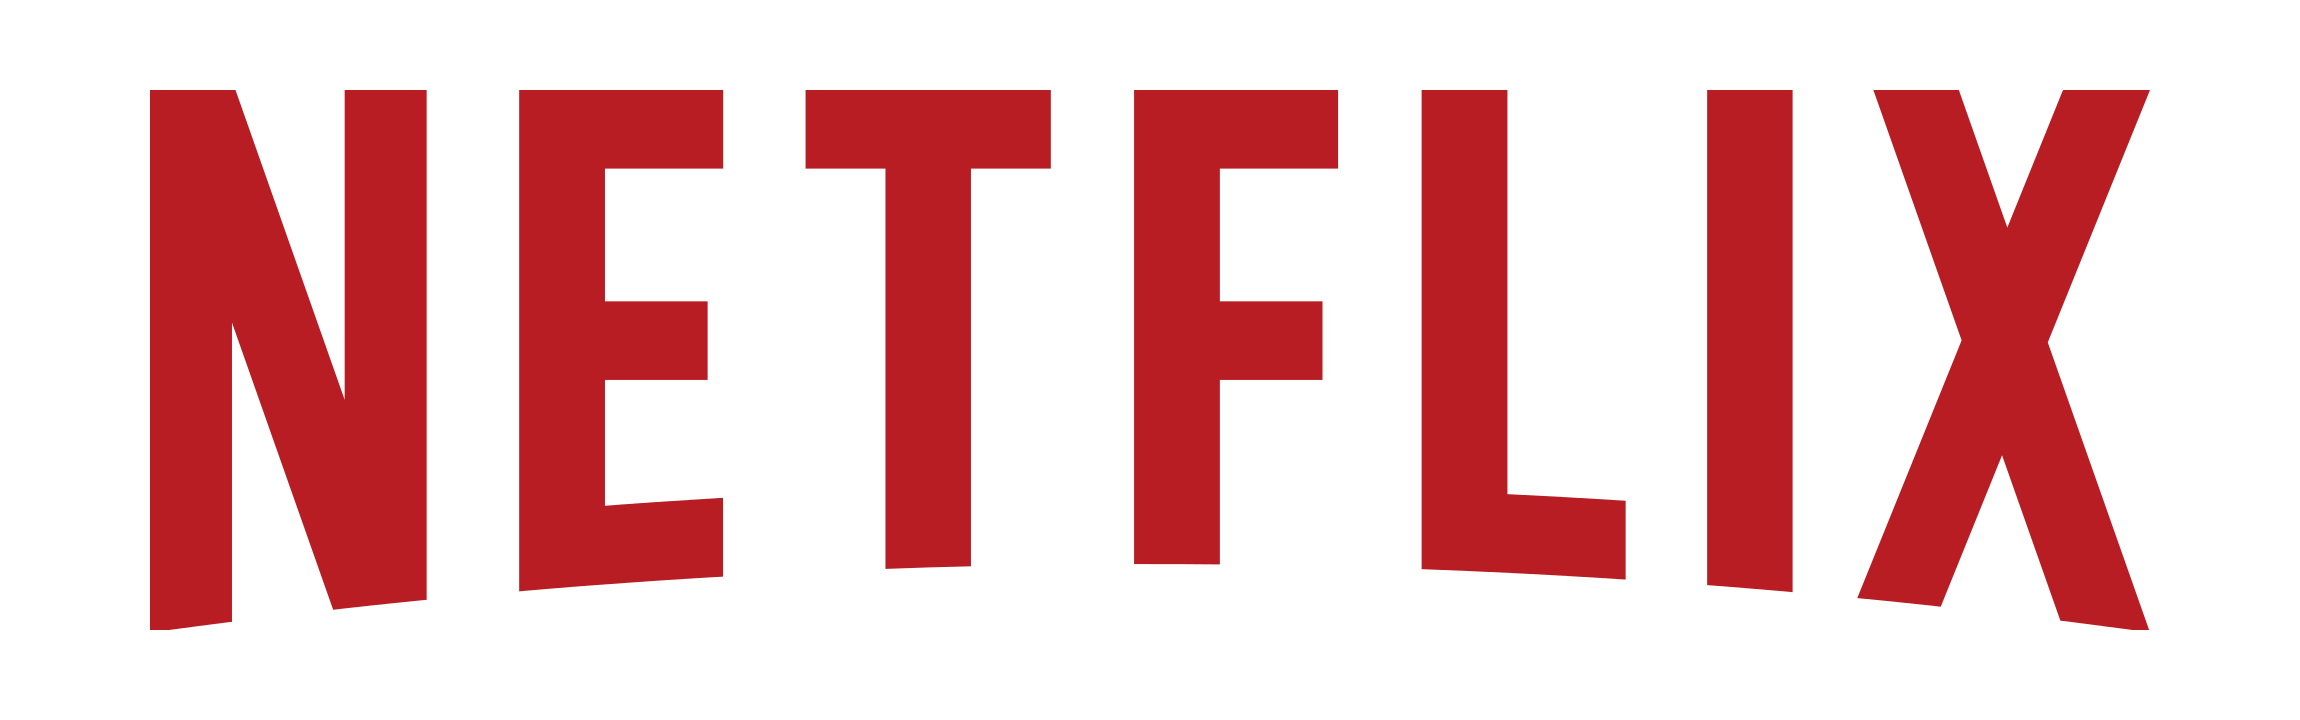 """netflix integrative running case This may not be the case for binge-watching, as some degree of  nearing the  nearing the end of its running time, netflix will automatically cue up the  """"the  restorative benefits of nature: toward an integrative framework,""""."""